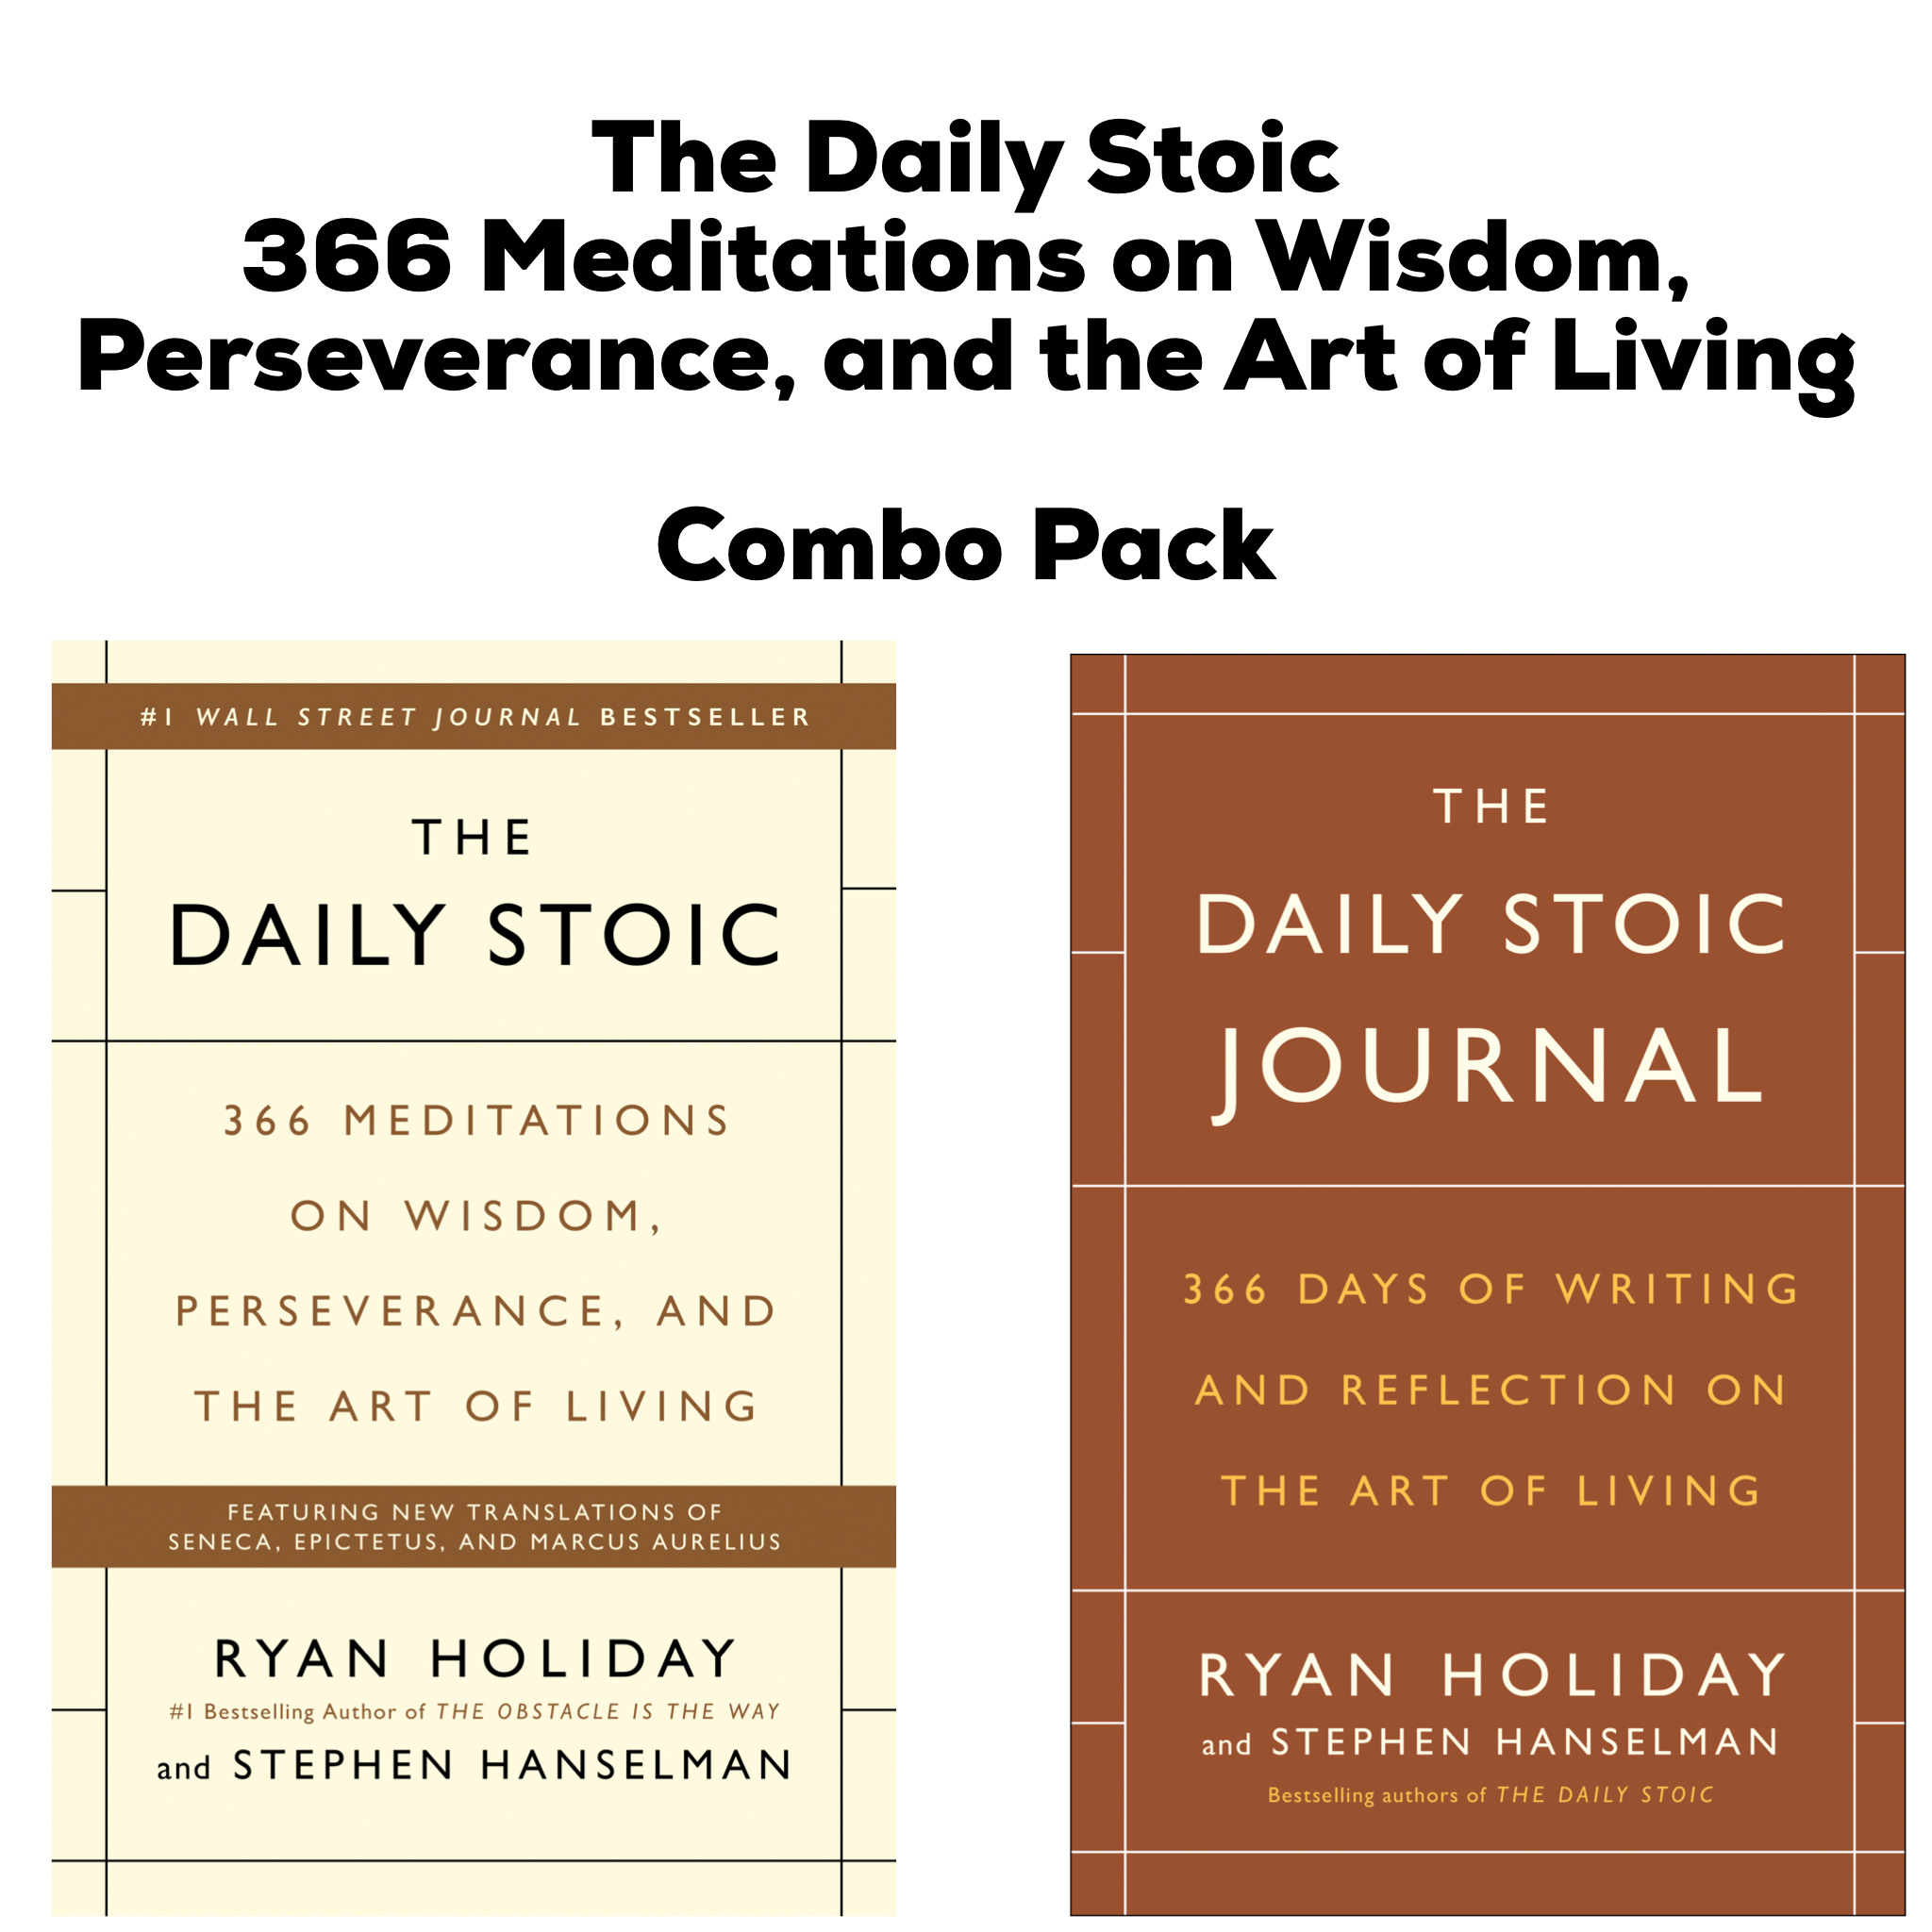 The Daily Stoic Book & Journal Combo Pack by Ryan Holiday